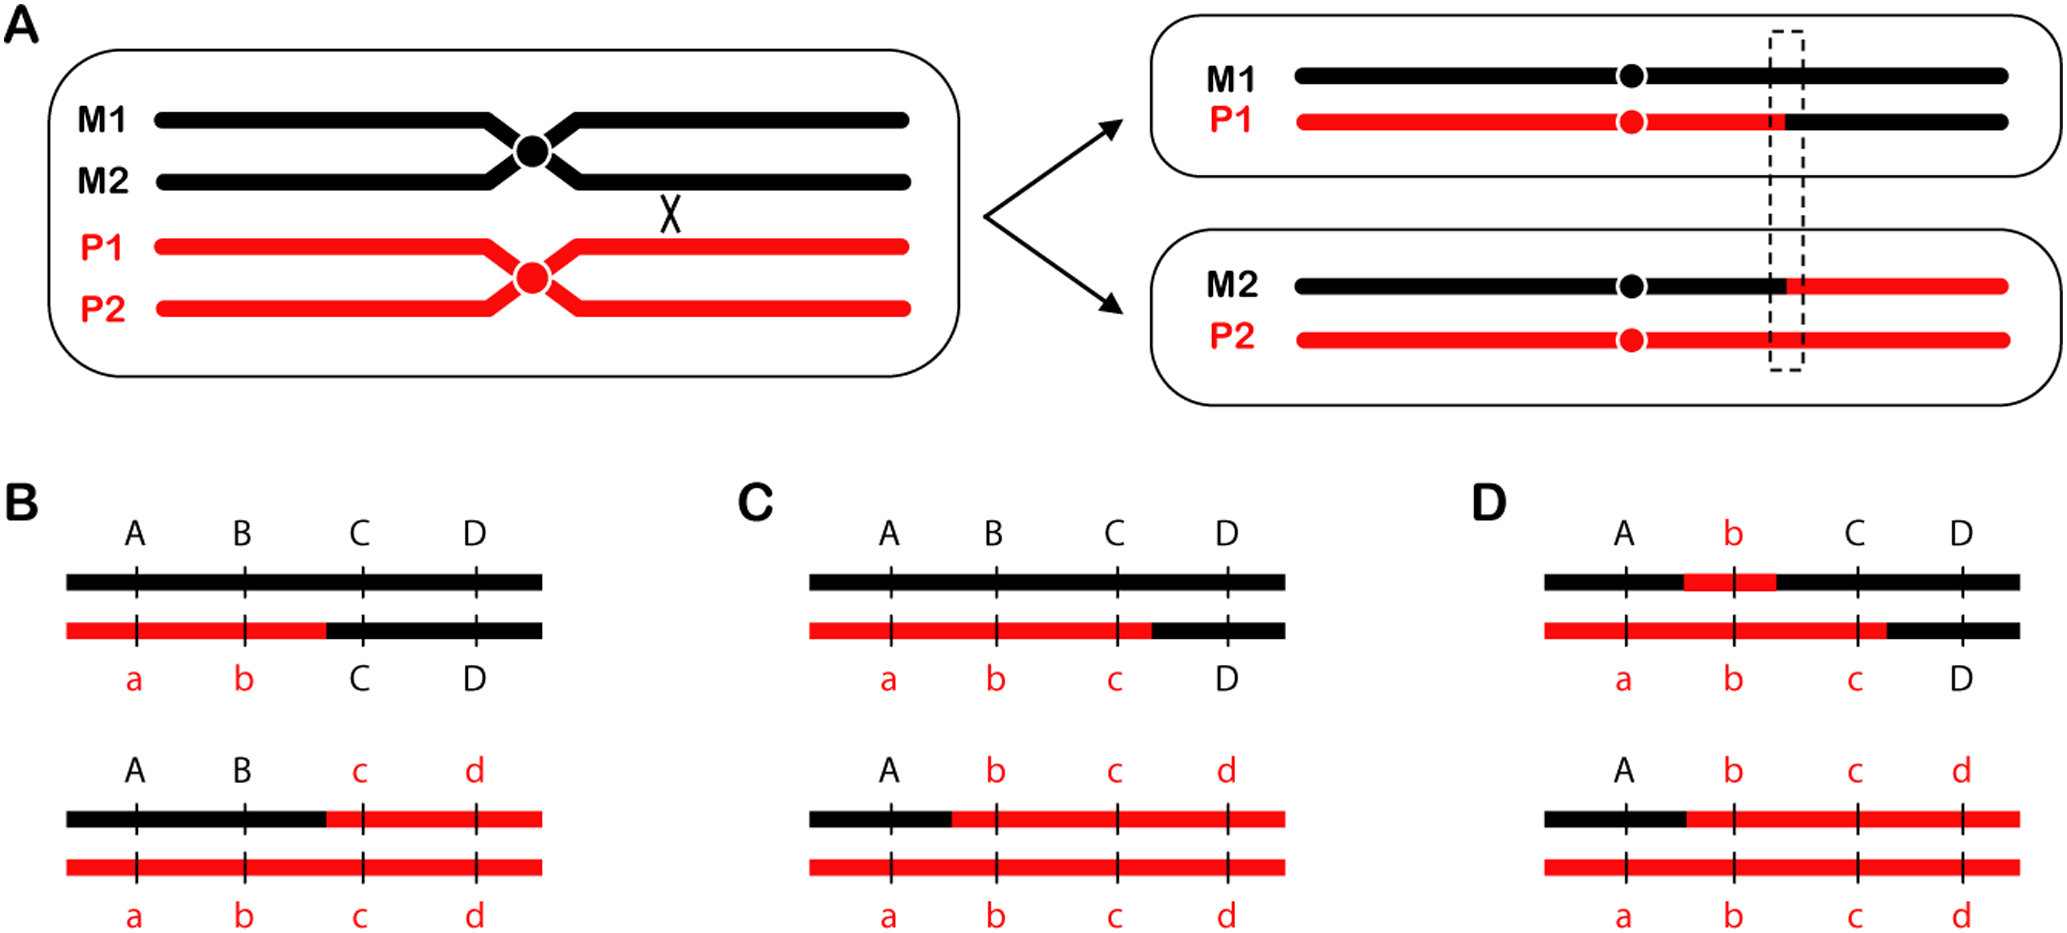 Reciprocal crossovers and gene conversion.